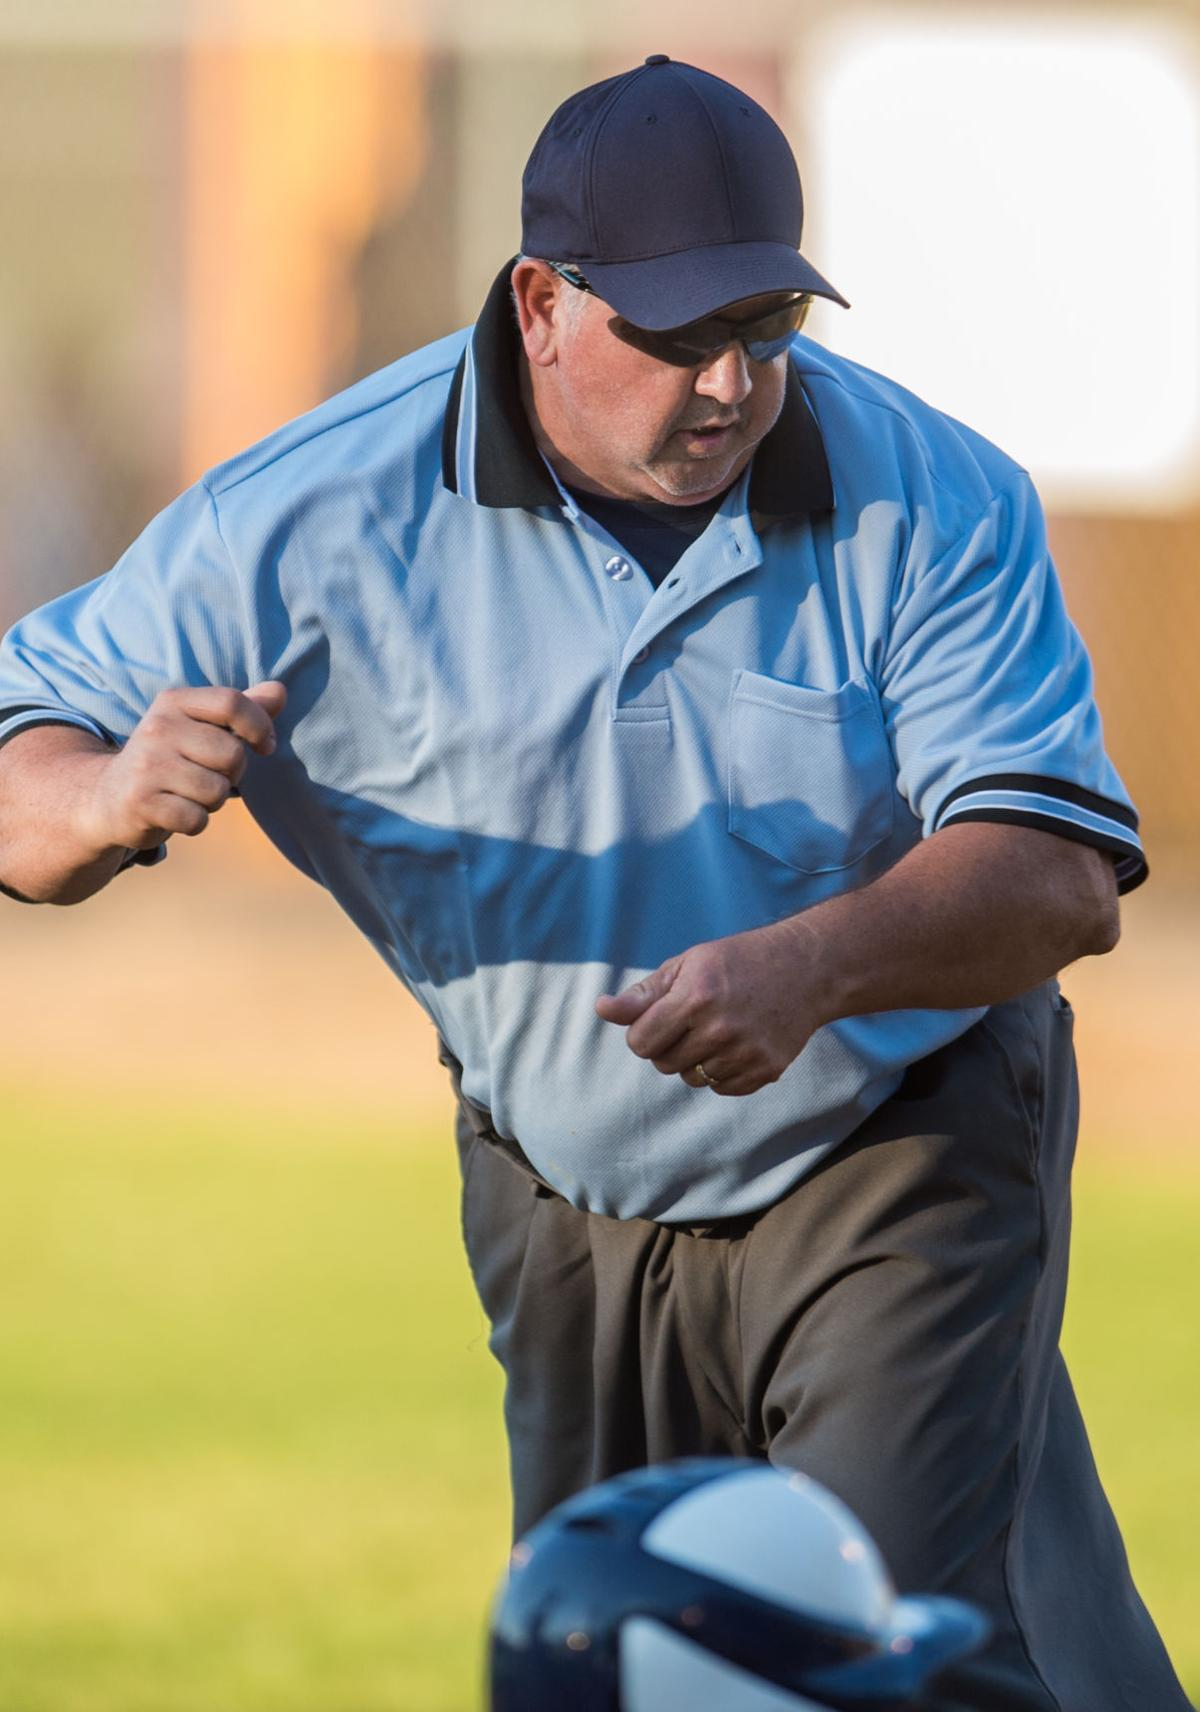 One 'Hotdog' all the way: umpire relishes role | Sports